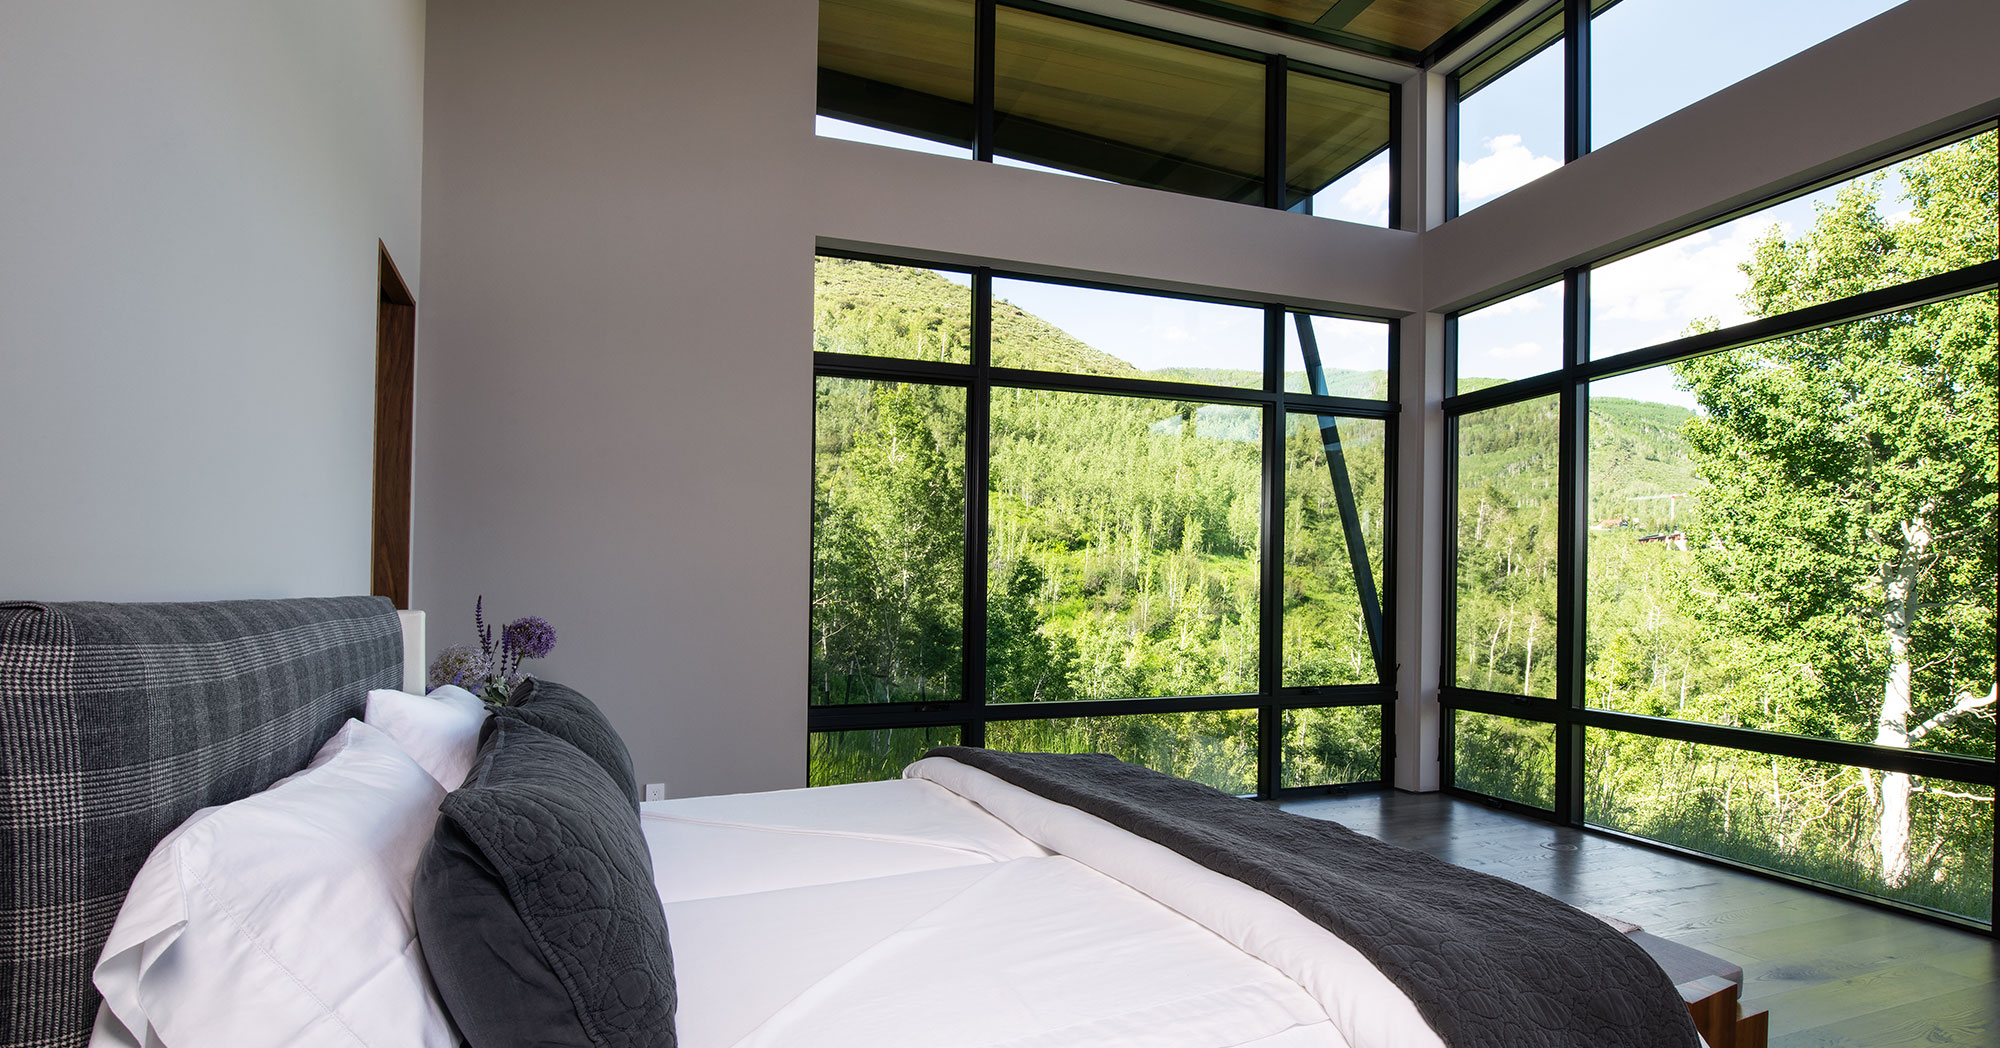 Bedroom overlooking Vail Mountain with Ski Views